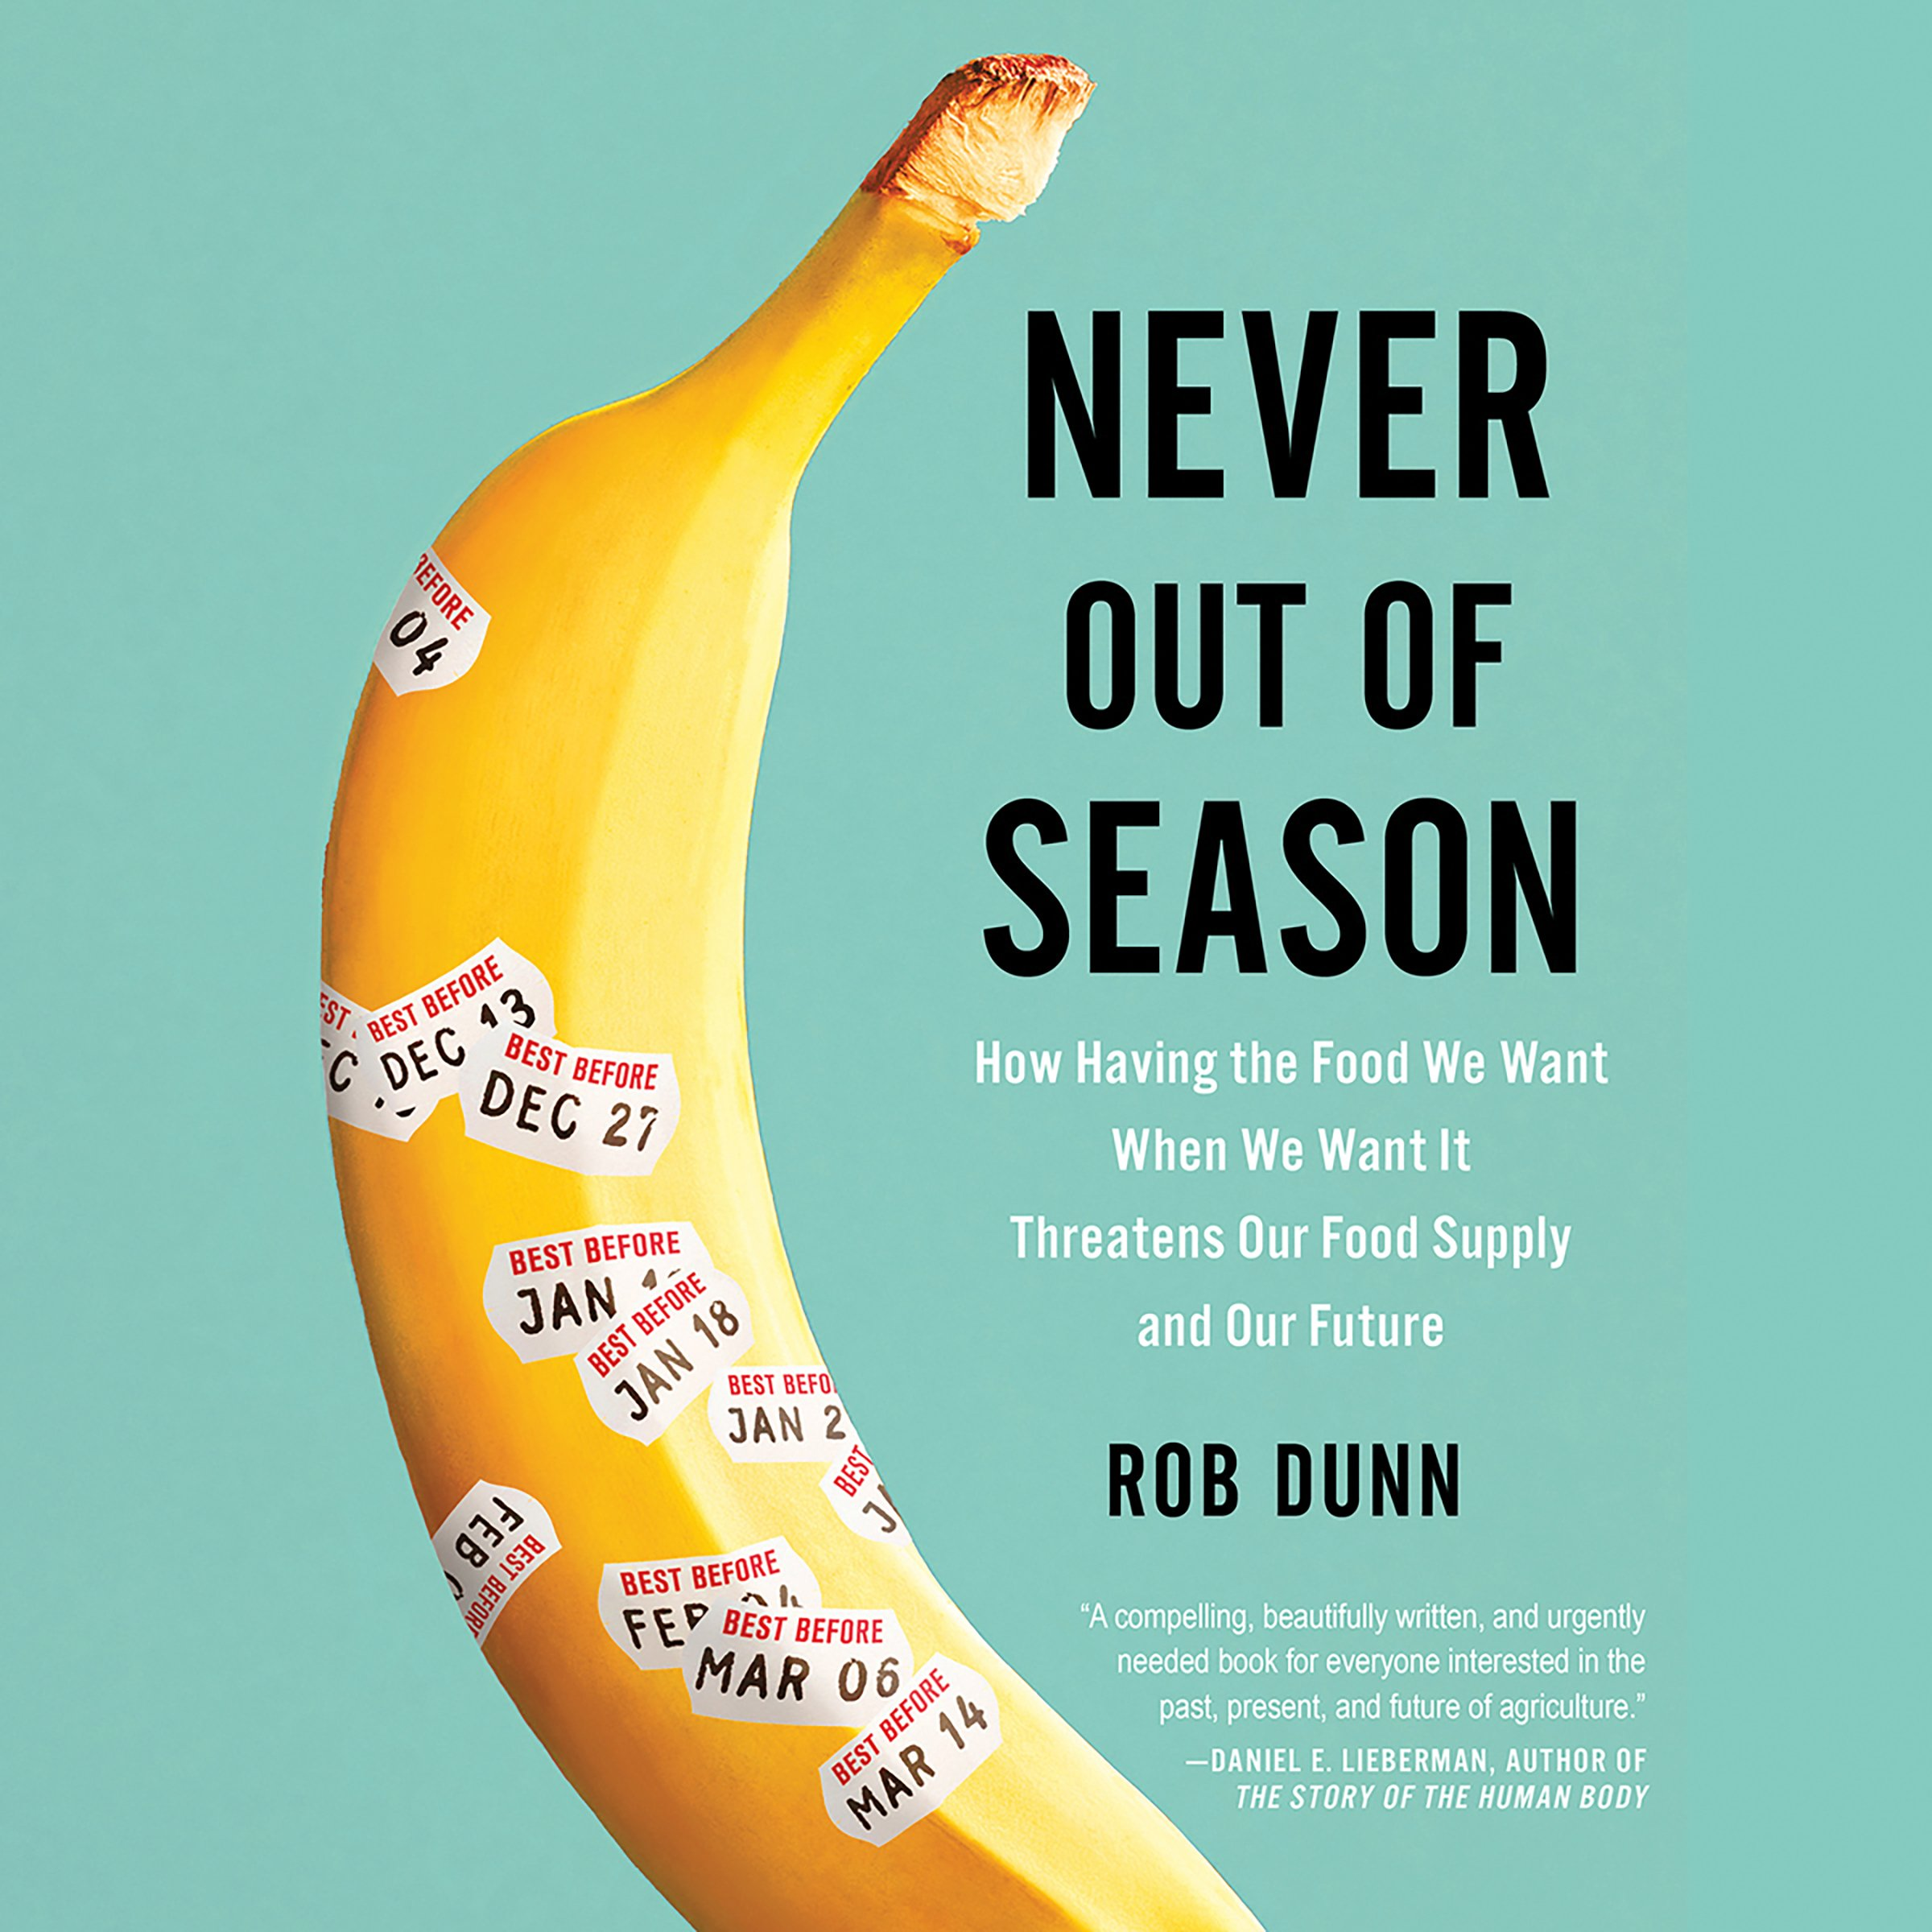 Never Out Of Season  How Having The Food We Want When We Want It Threatens Our Food Supply And Our Future